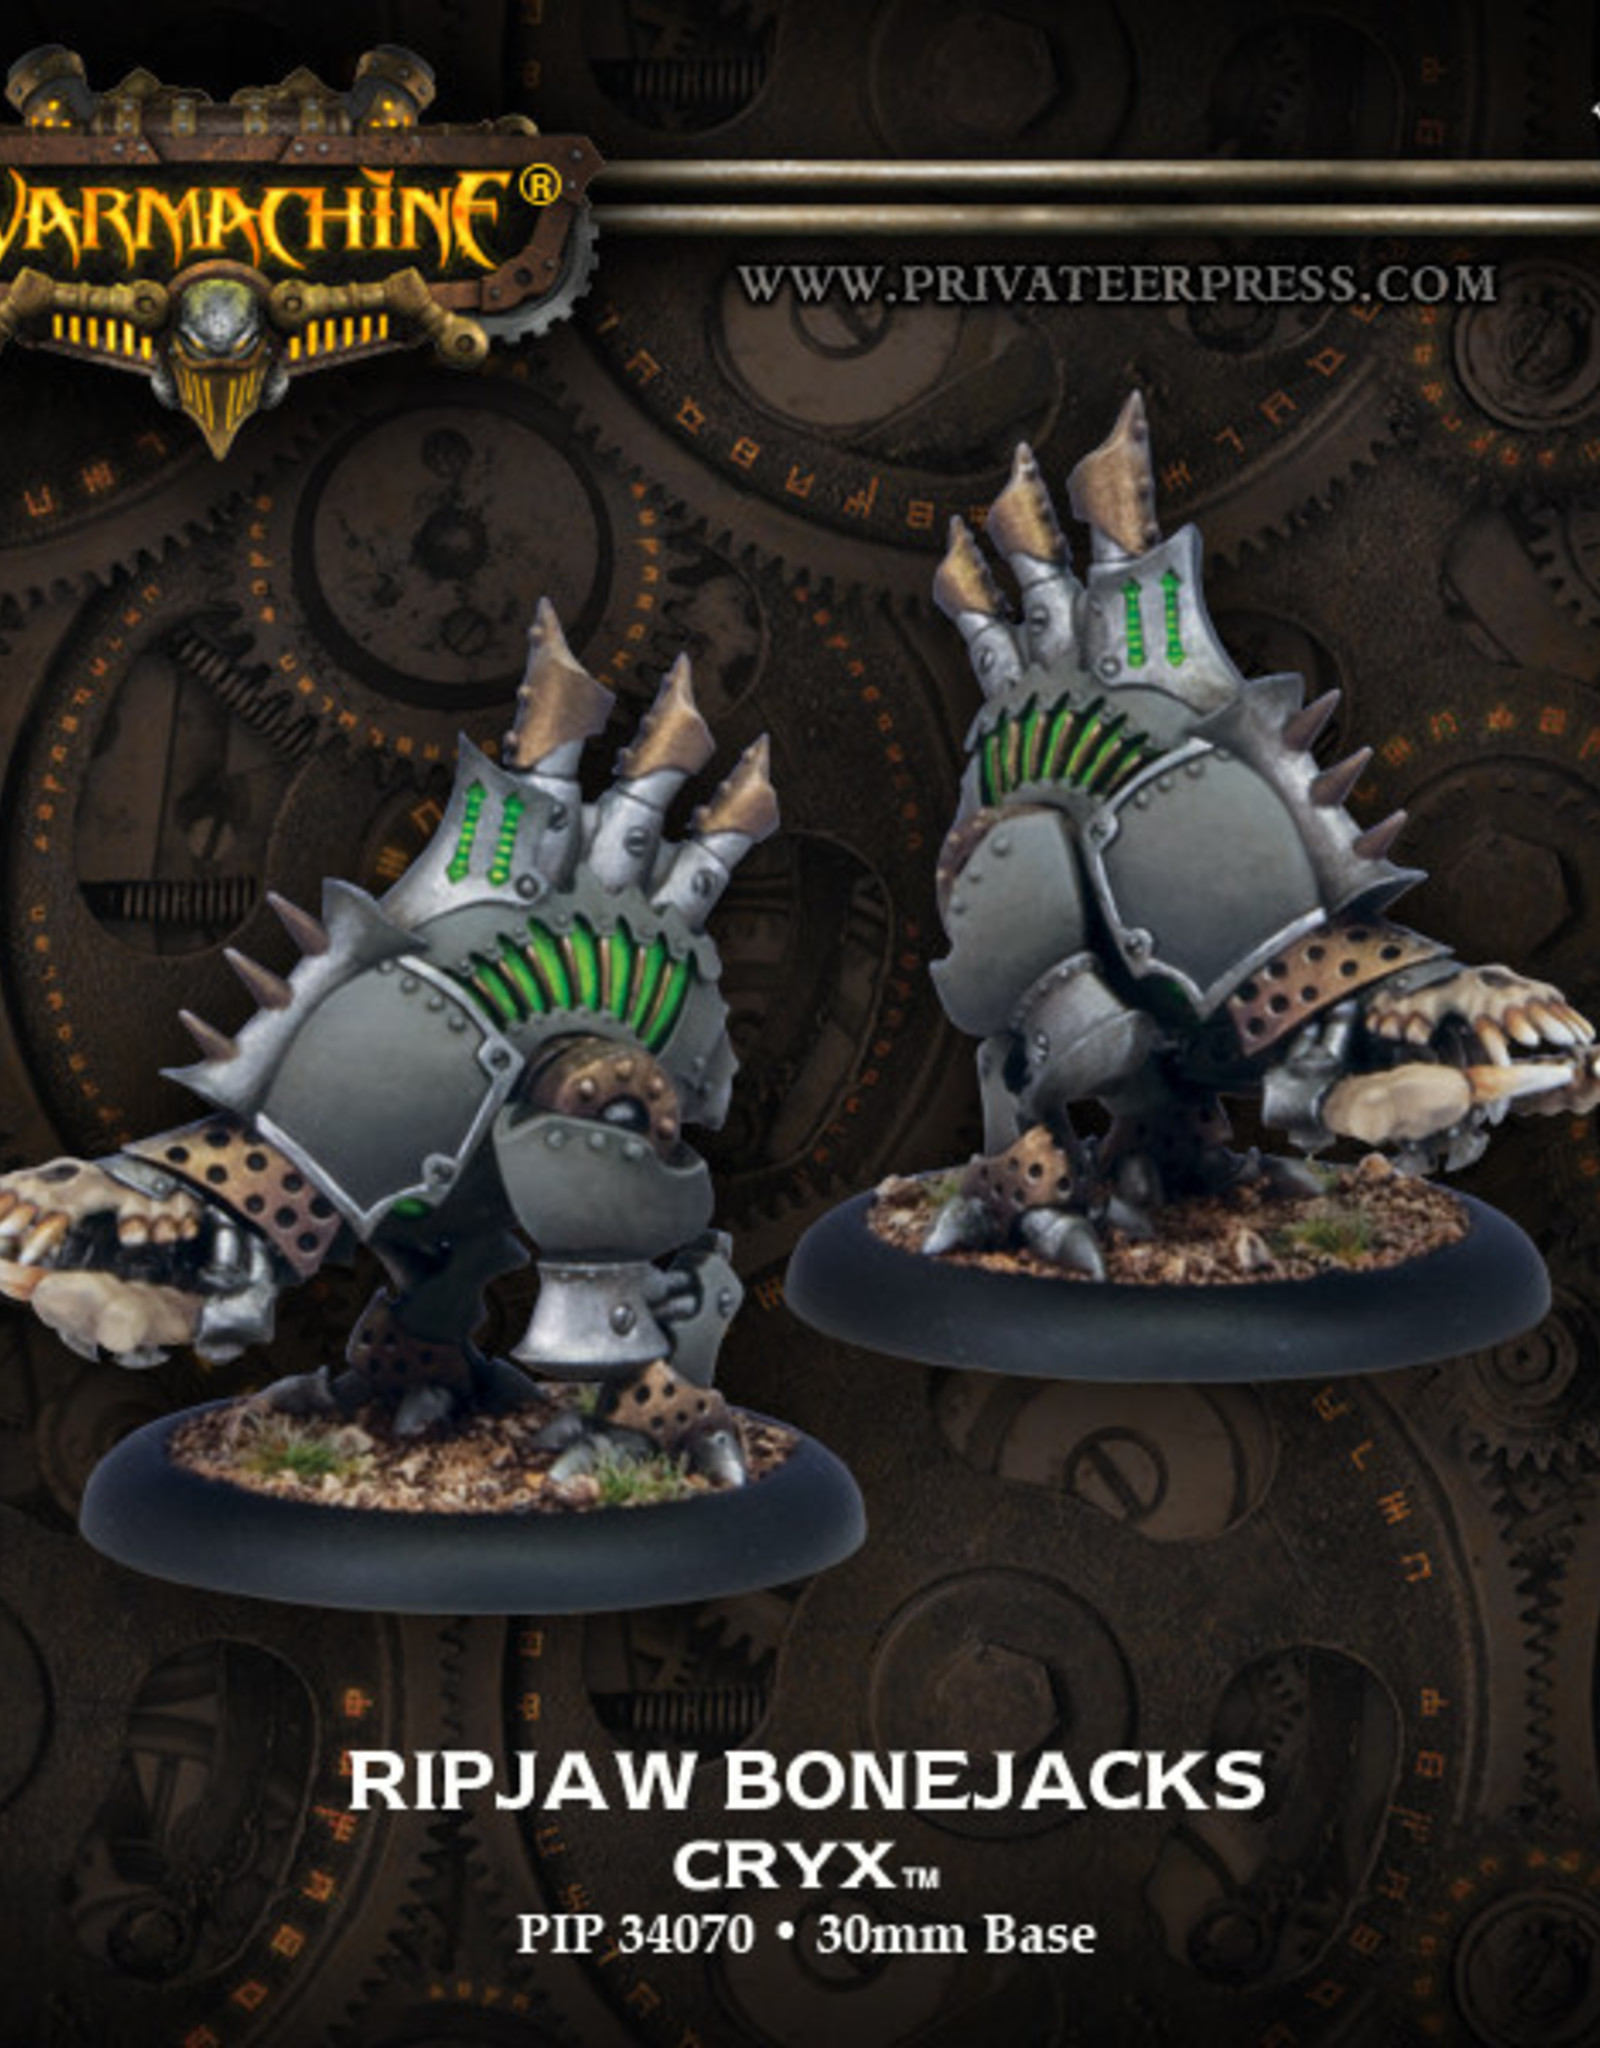 Warmachine Cryx - Ripjaw Bonejacks